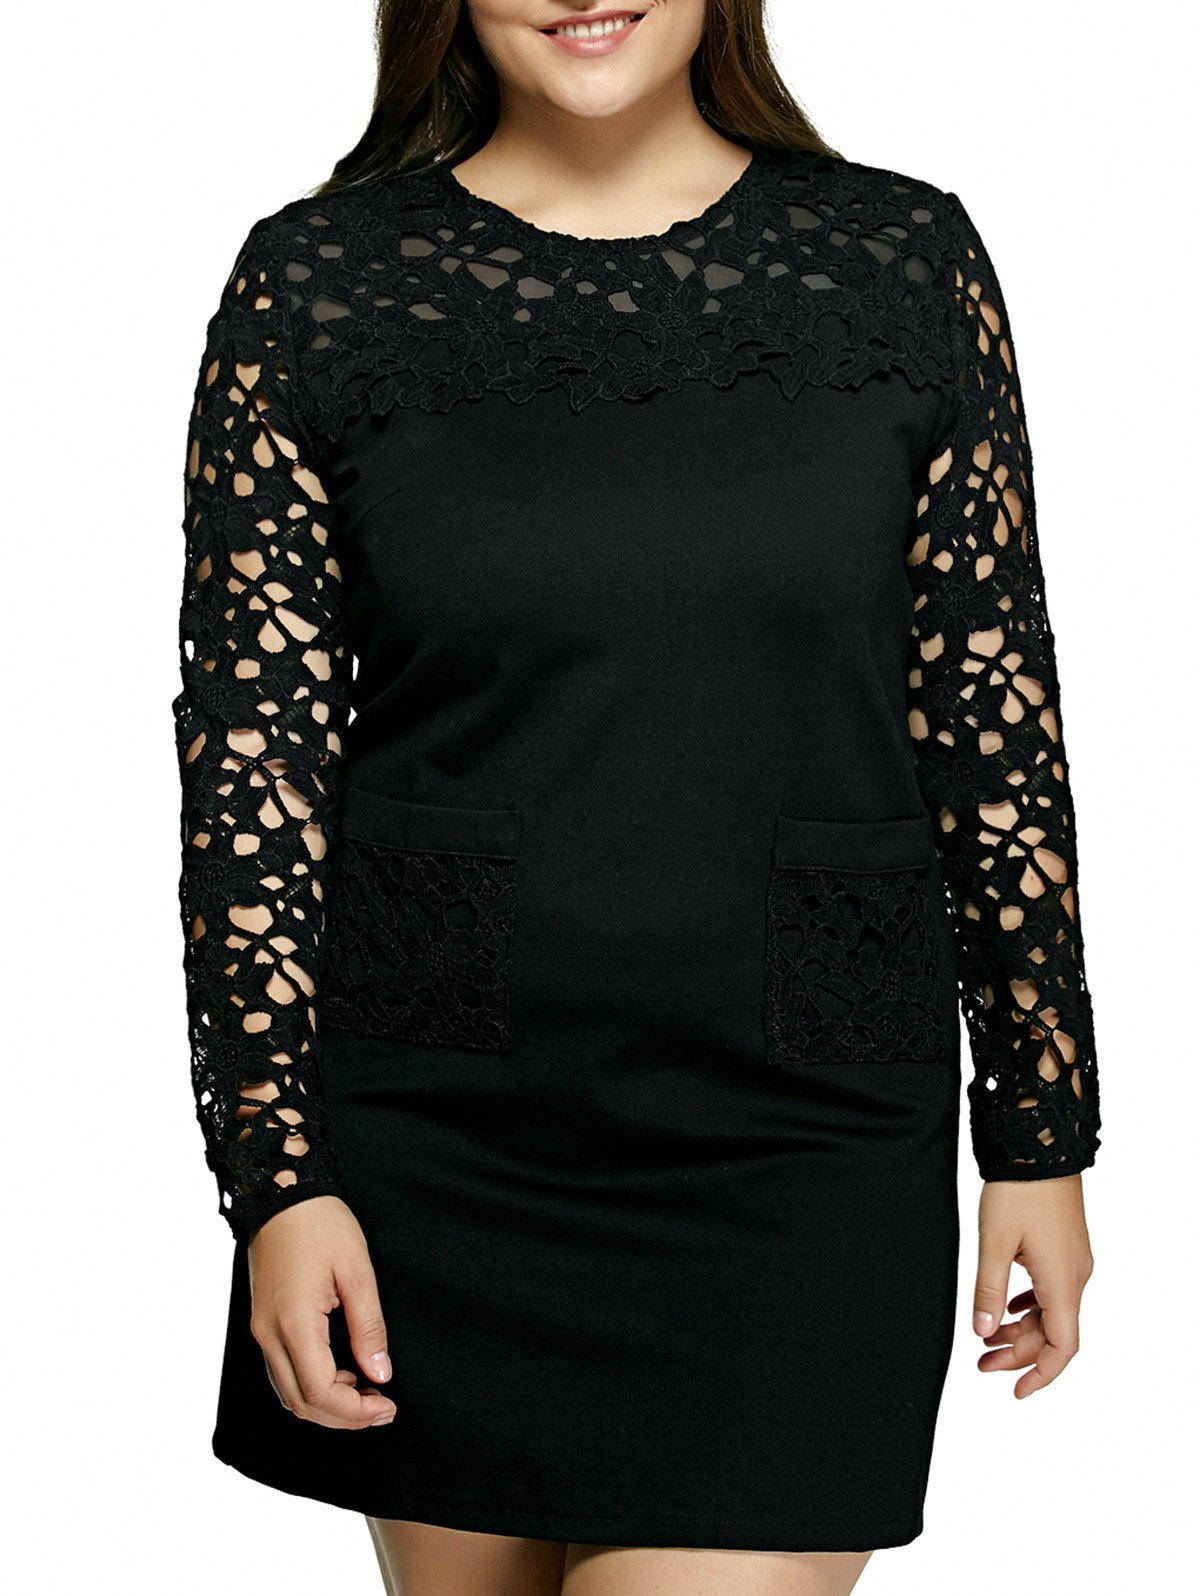 Oversized Crochet Spliced Hollow Out Dress - BLACK 5XL